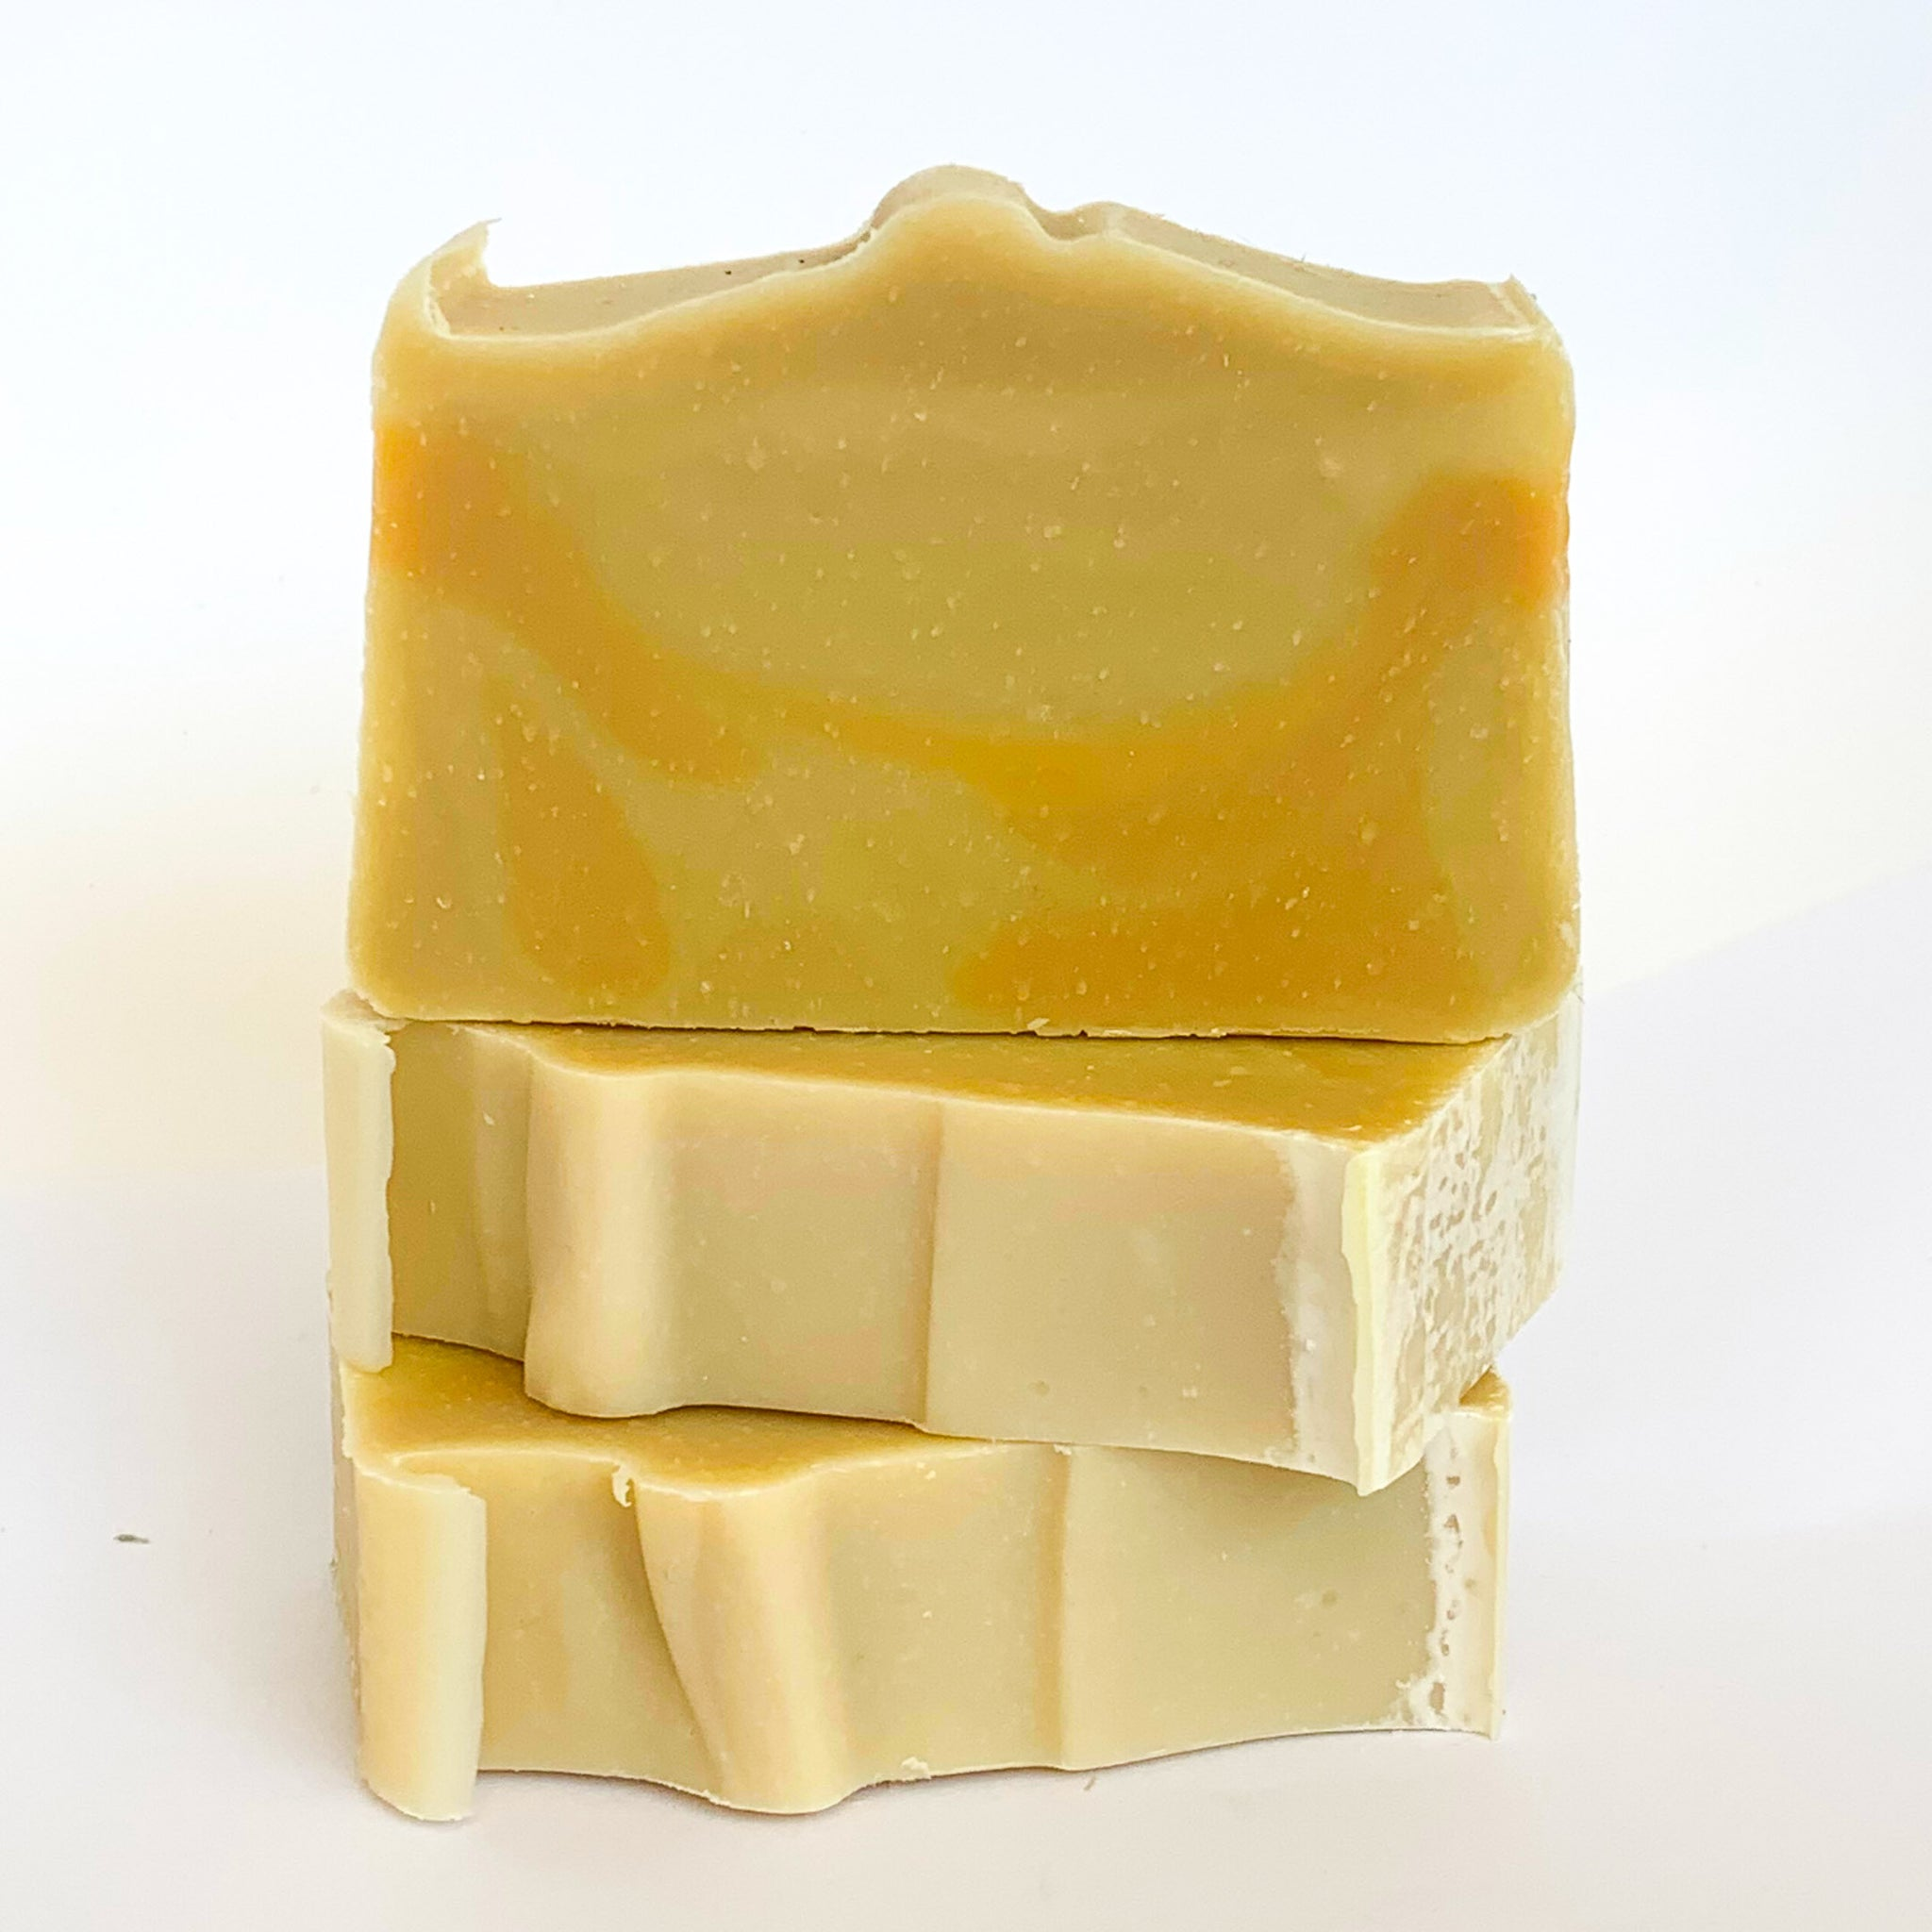 Pineapple and Mango Olive Oil Soap with Beeswax